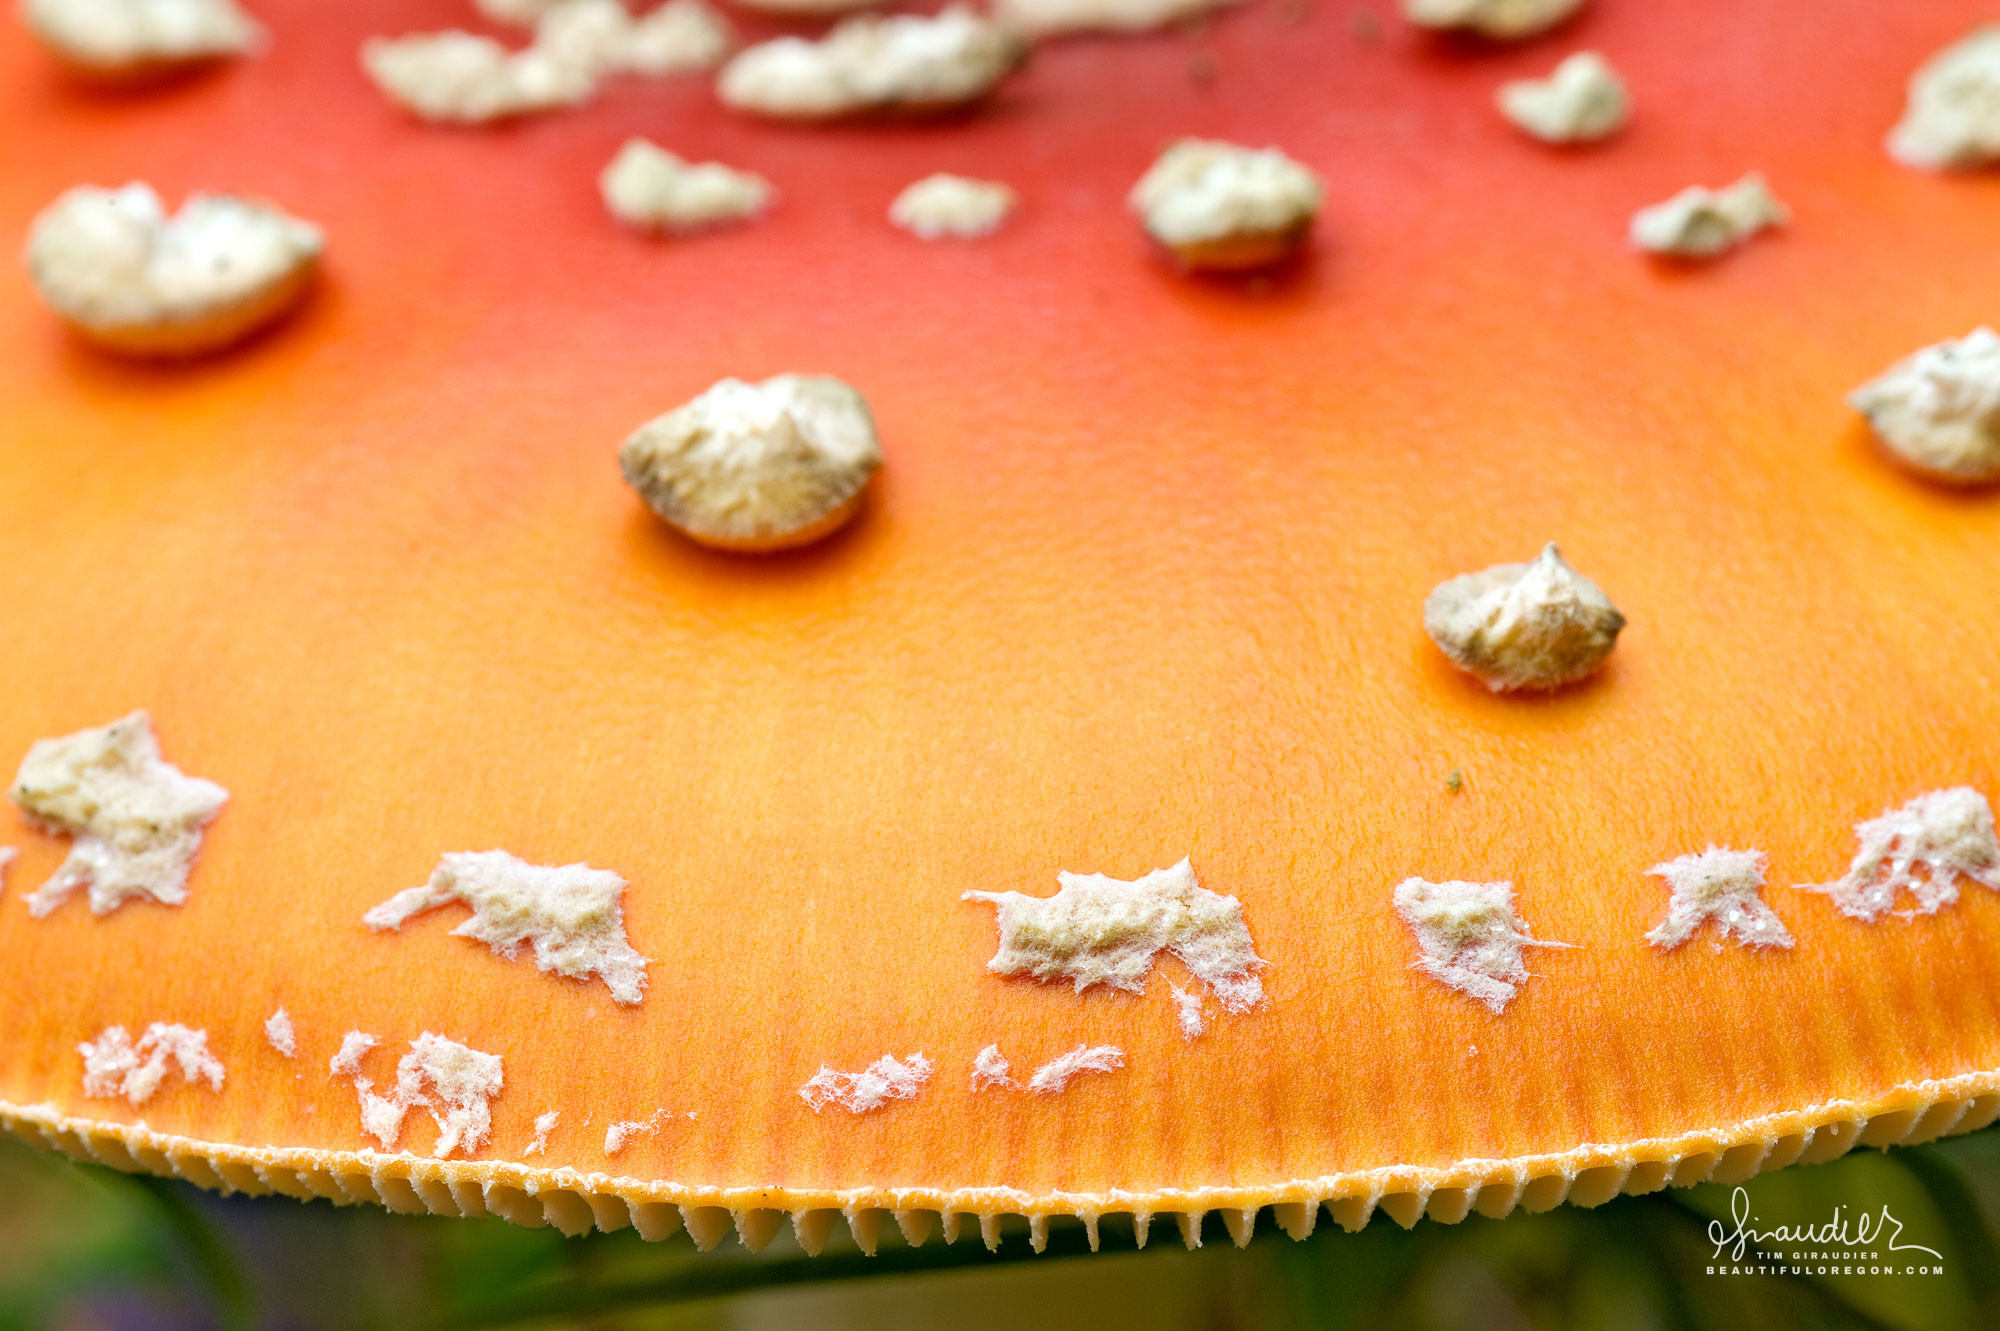 Detail of Fly agaric (Amanita muscaria), illustrating margin striations and fragments of universal veil which remain on surface of cap. Mushrooms of Oregon and Pacific Northwest.